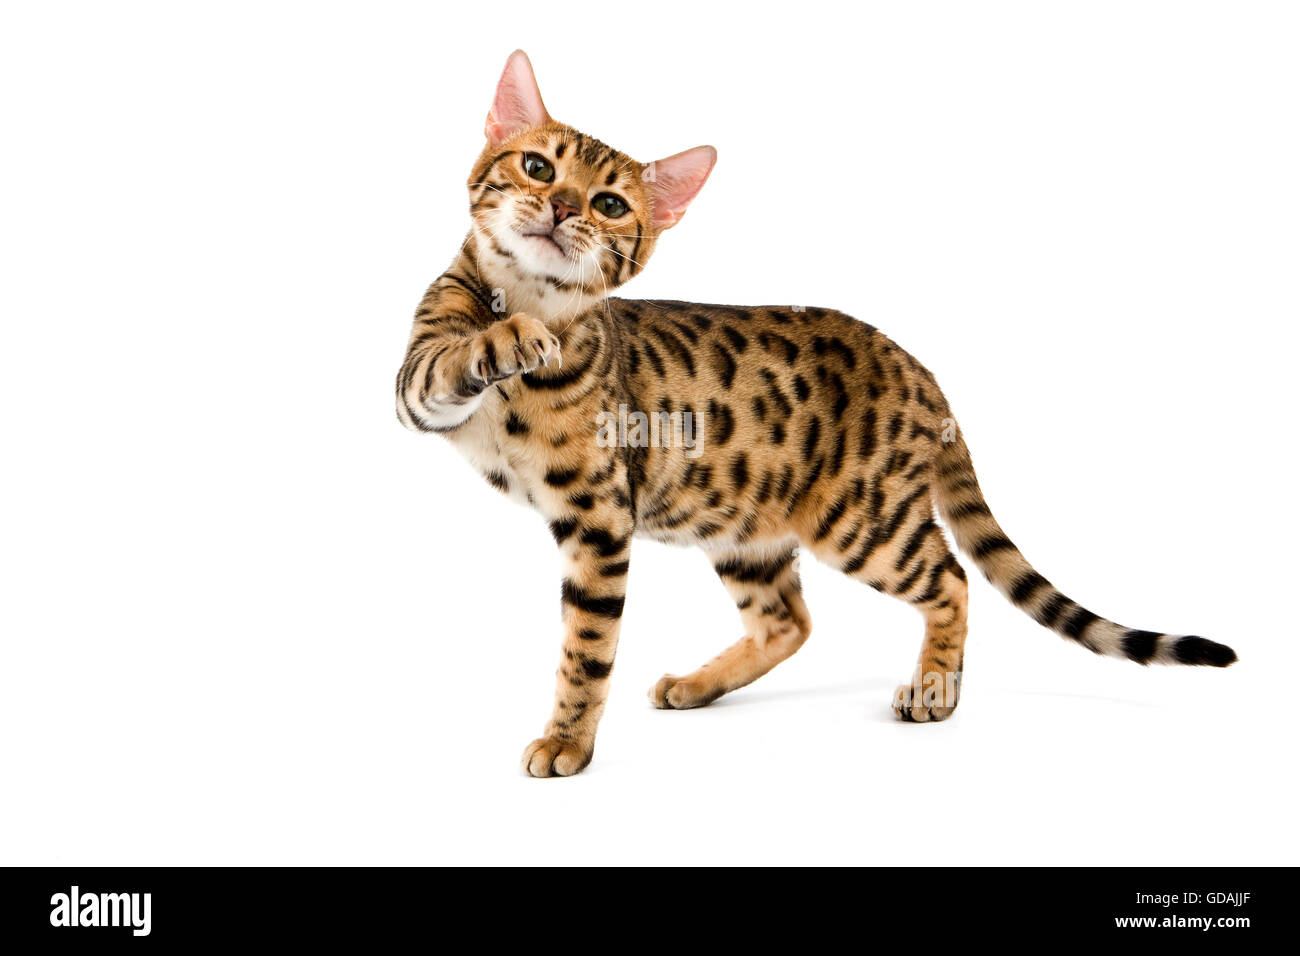 Brown Spotted Tabby Bengal Domestic Cat holding Paw up against ...